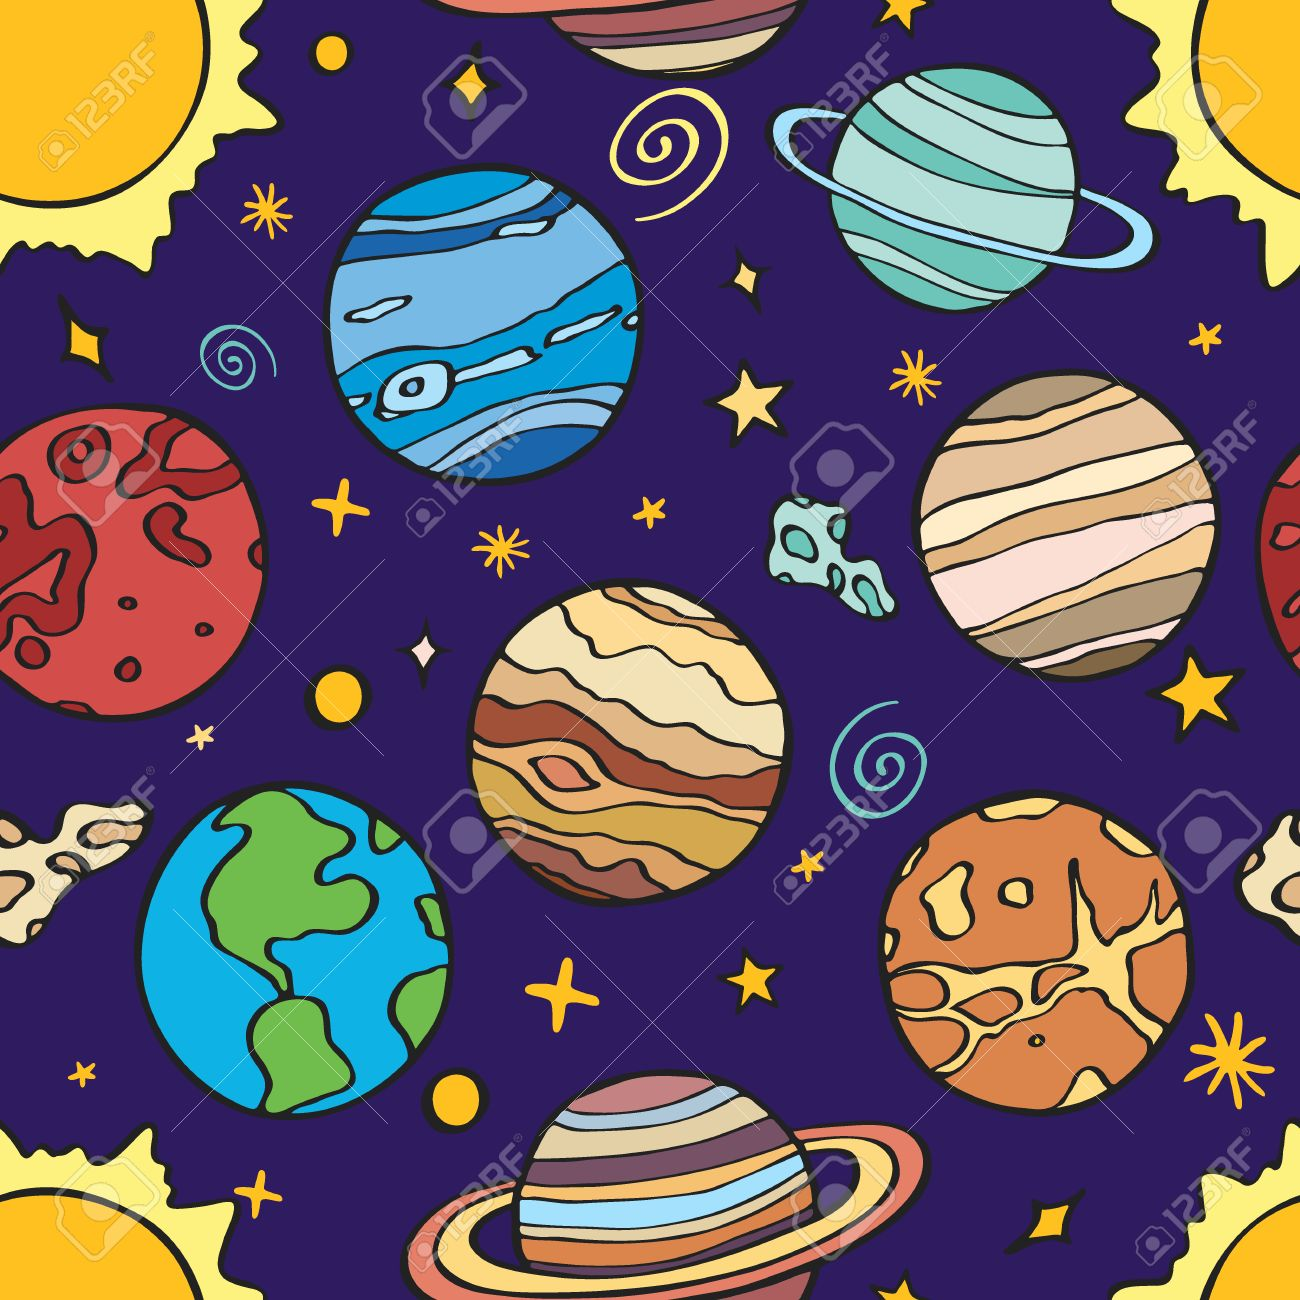 1300x1300 Solar System Planets. Seamless Pattern With Hand Drawn Cartoon